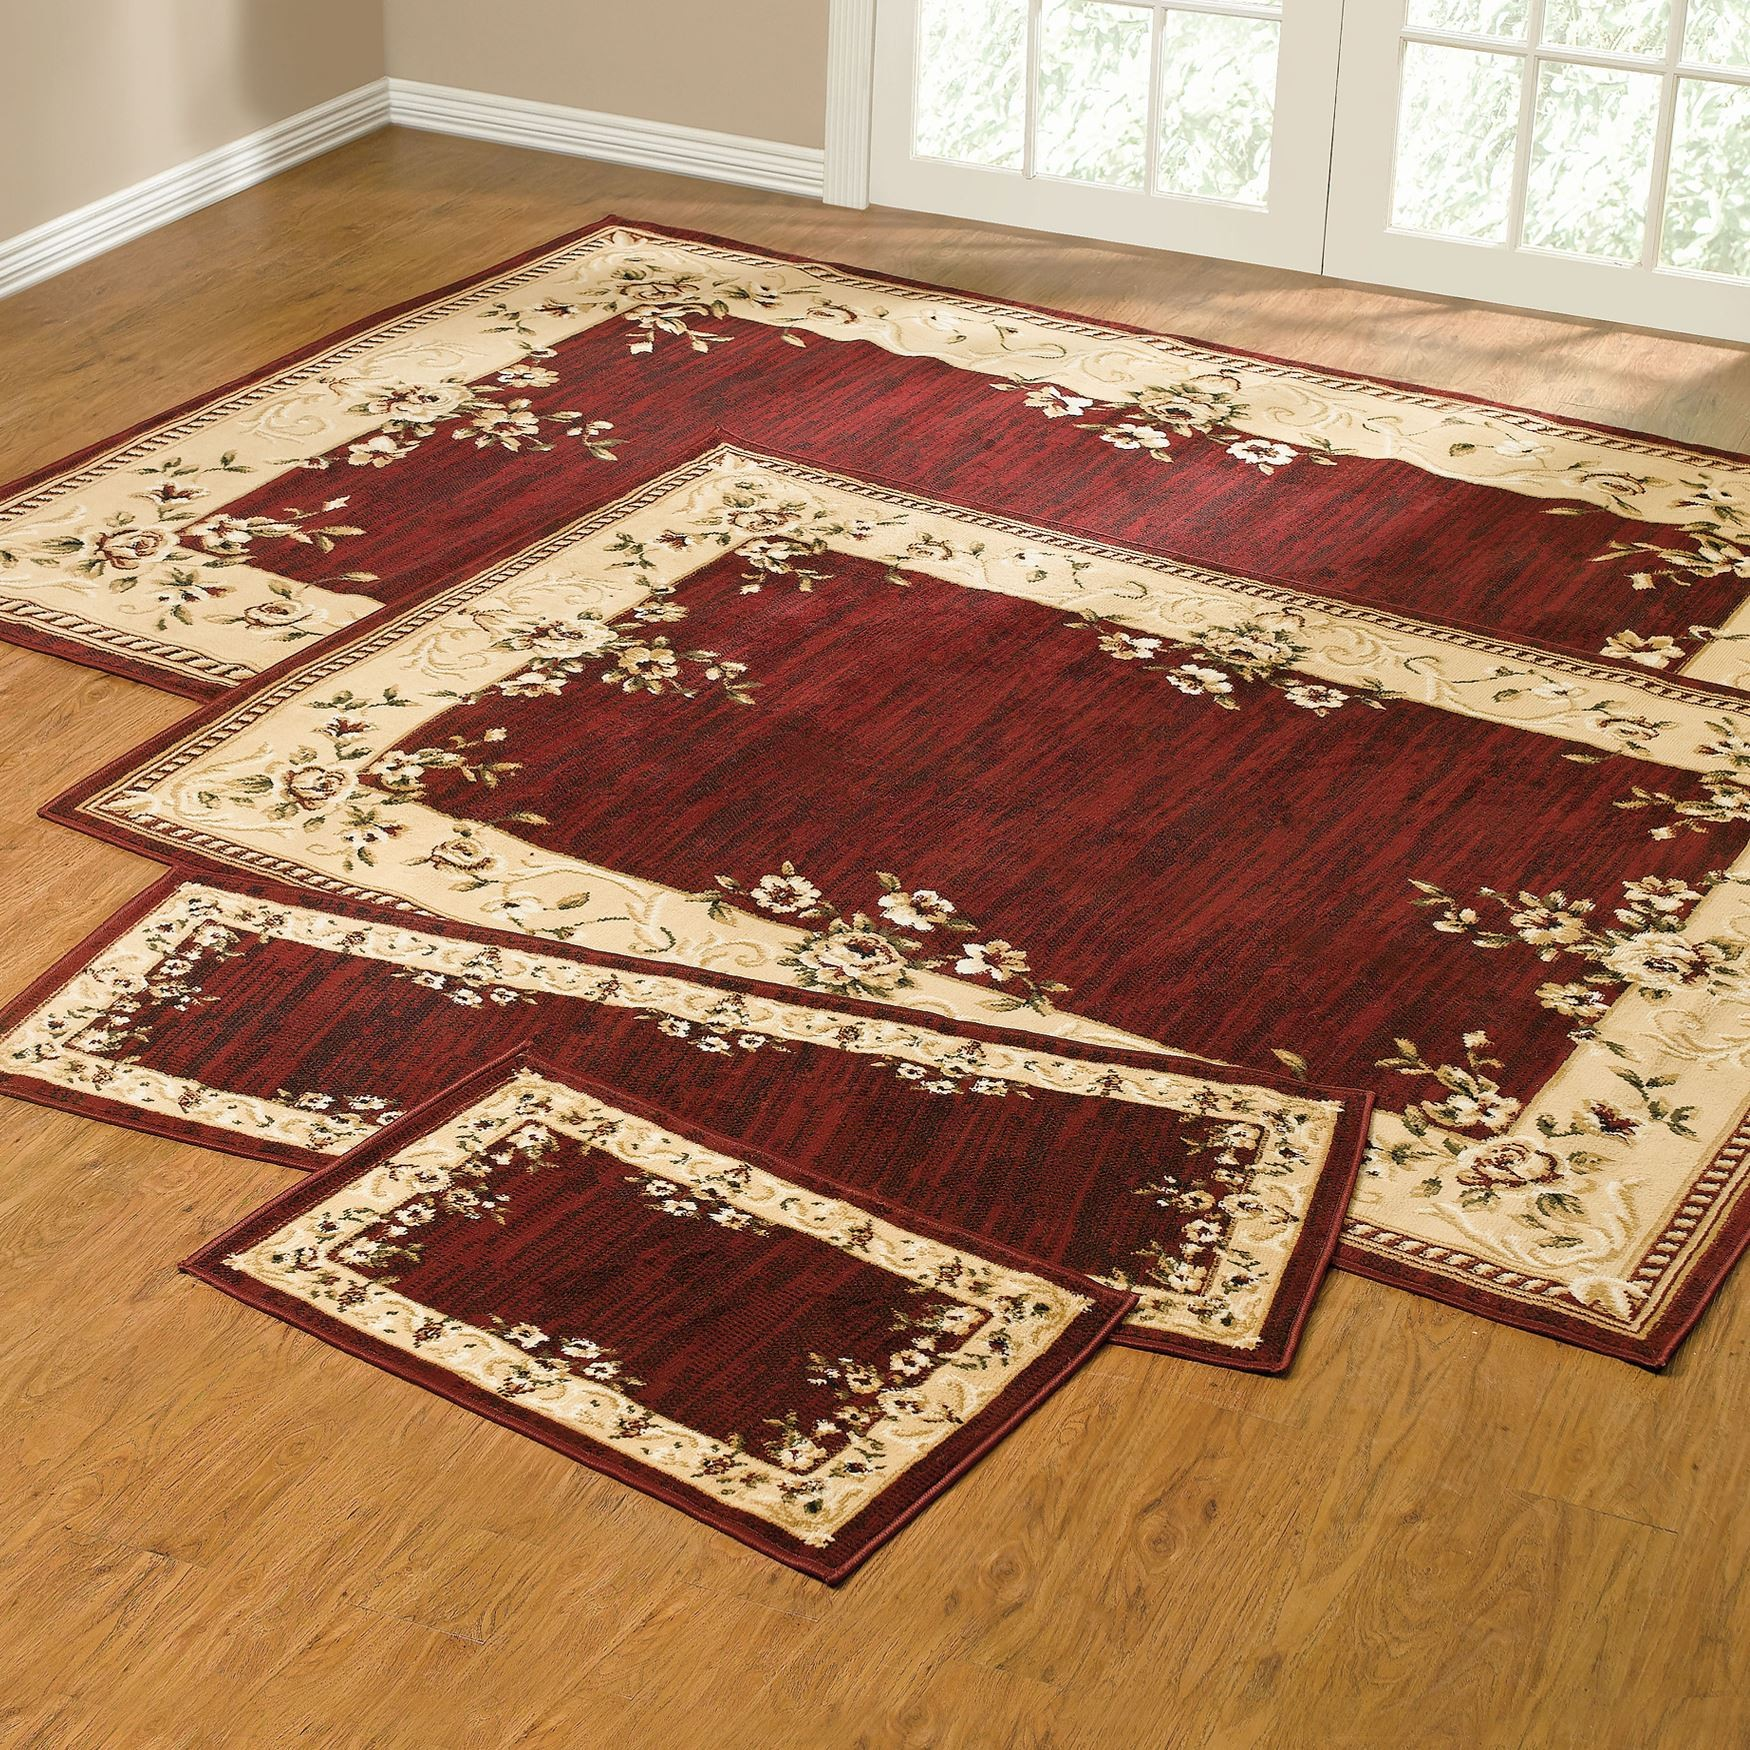 Cheap Area Rug Sets